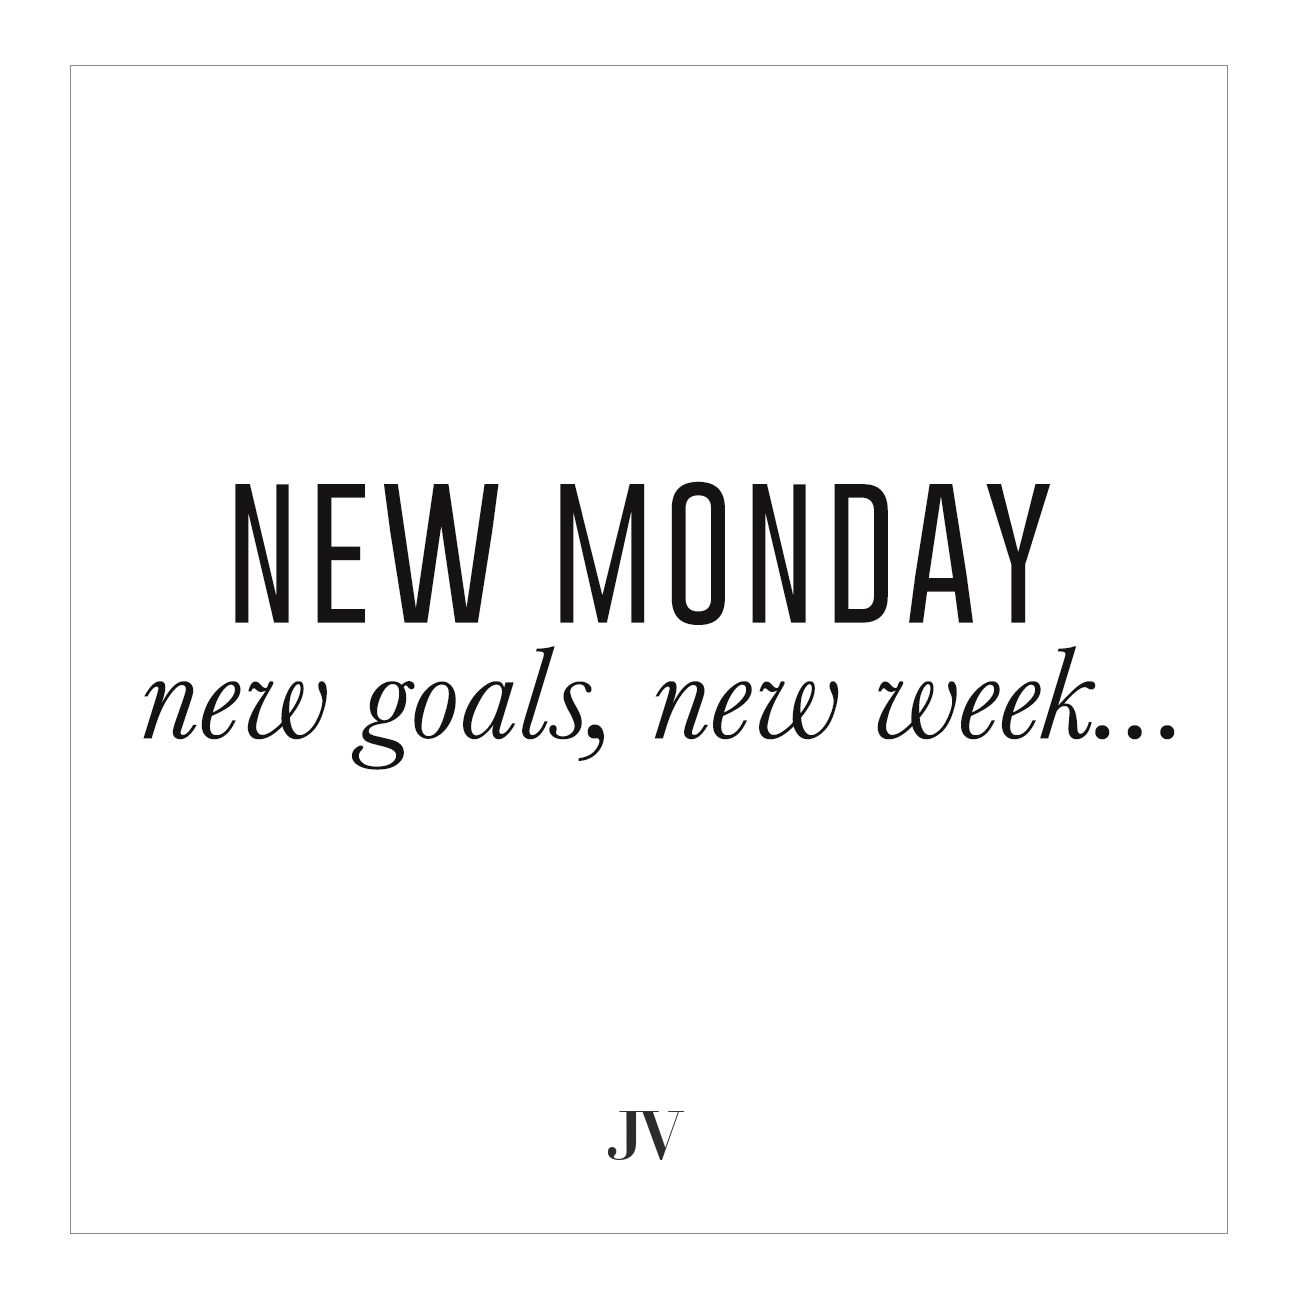 Week Quotes Endearing Josh V  New Monday New Goals New Week  Quote  Days Of The Week